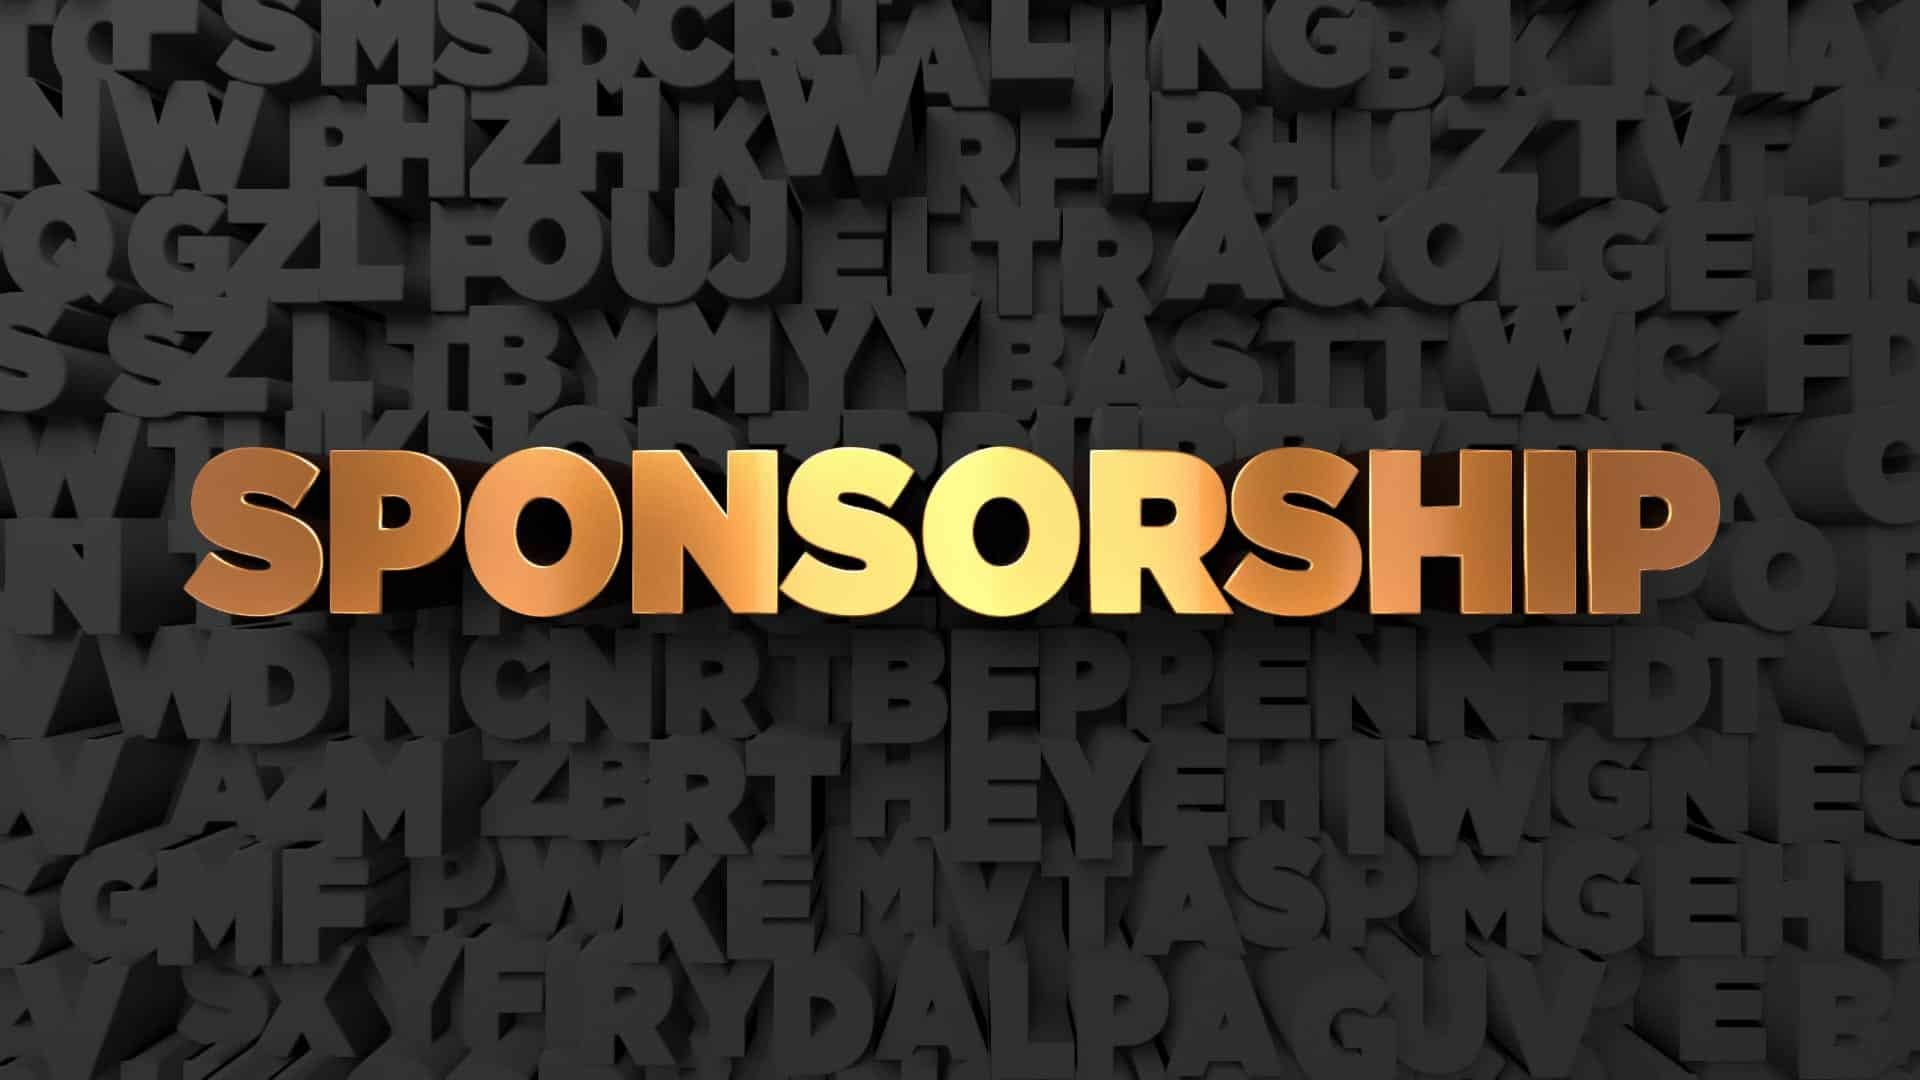 3D design of sponsorship written in gold with a black background